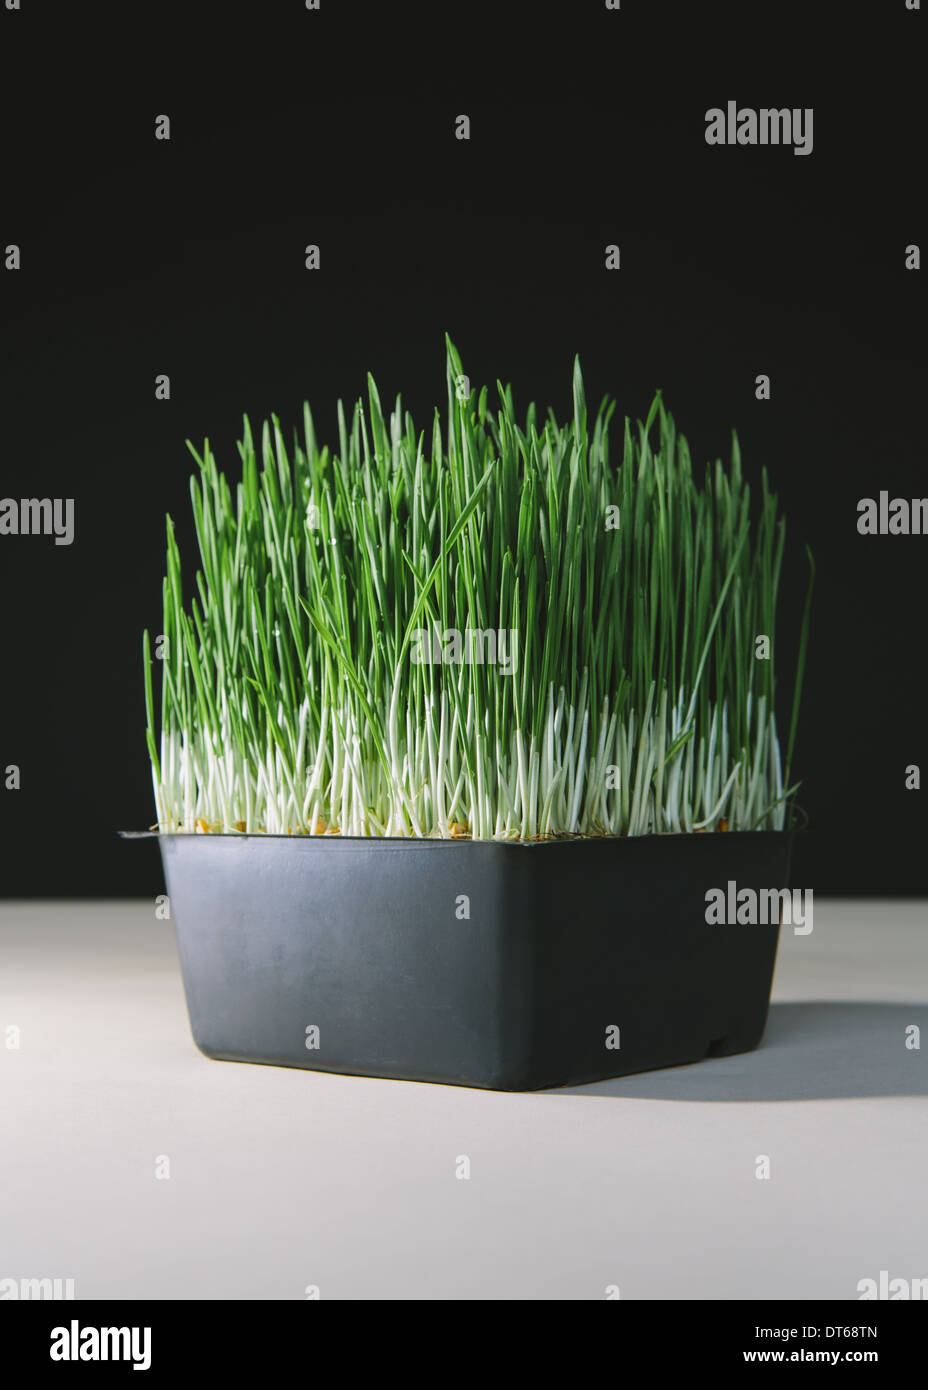 A shallow tray of organic wheatgrass in a growing medium. Green and white stems. - Stock Image